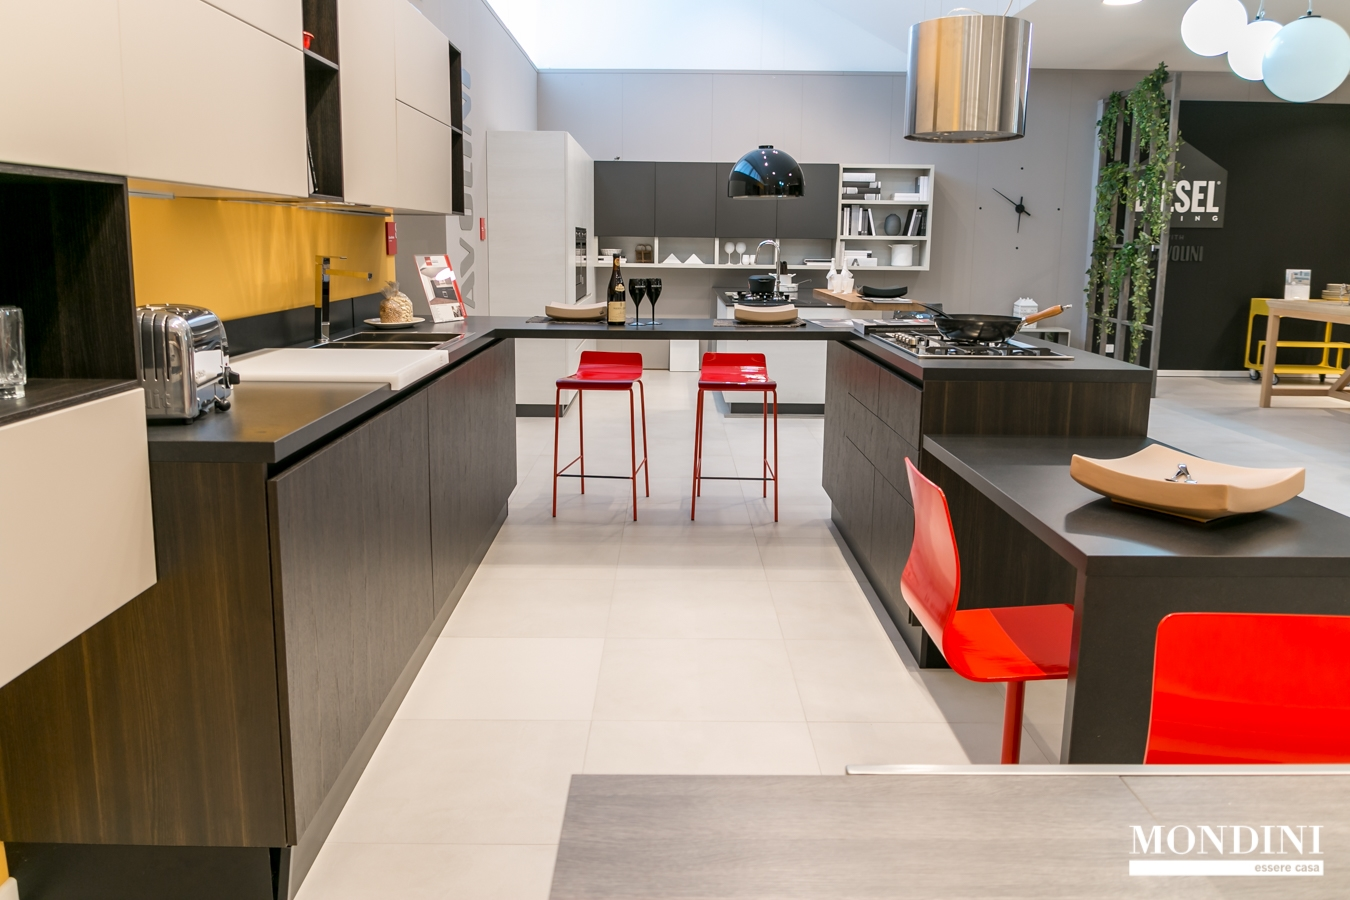 Cucine Scavolini Milano. Cucine Scavolini Milano With Cucine ...